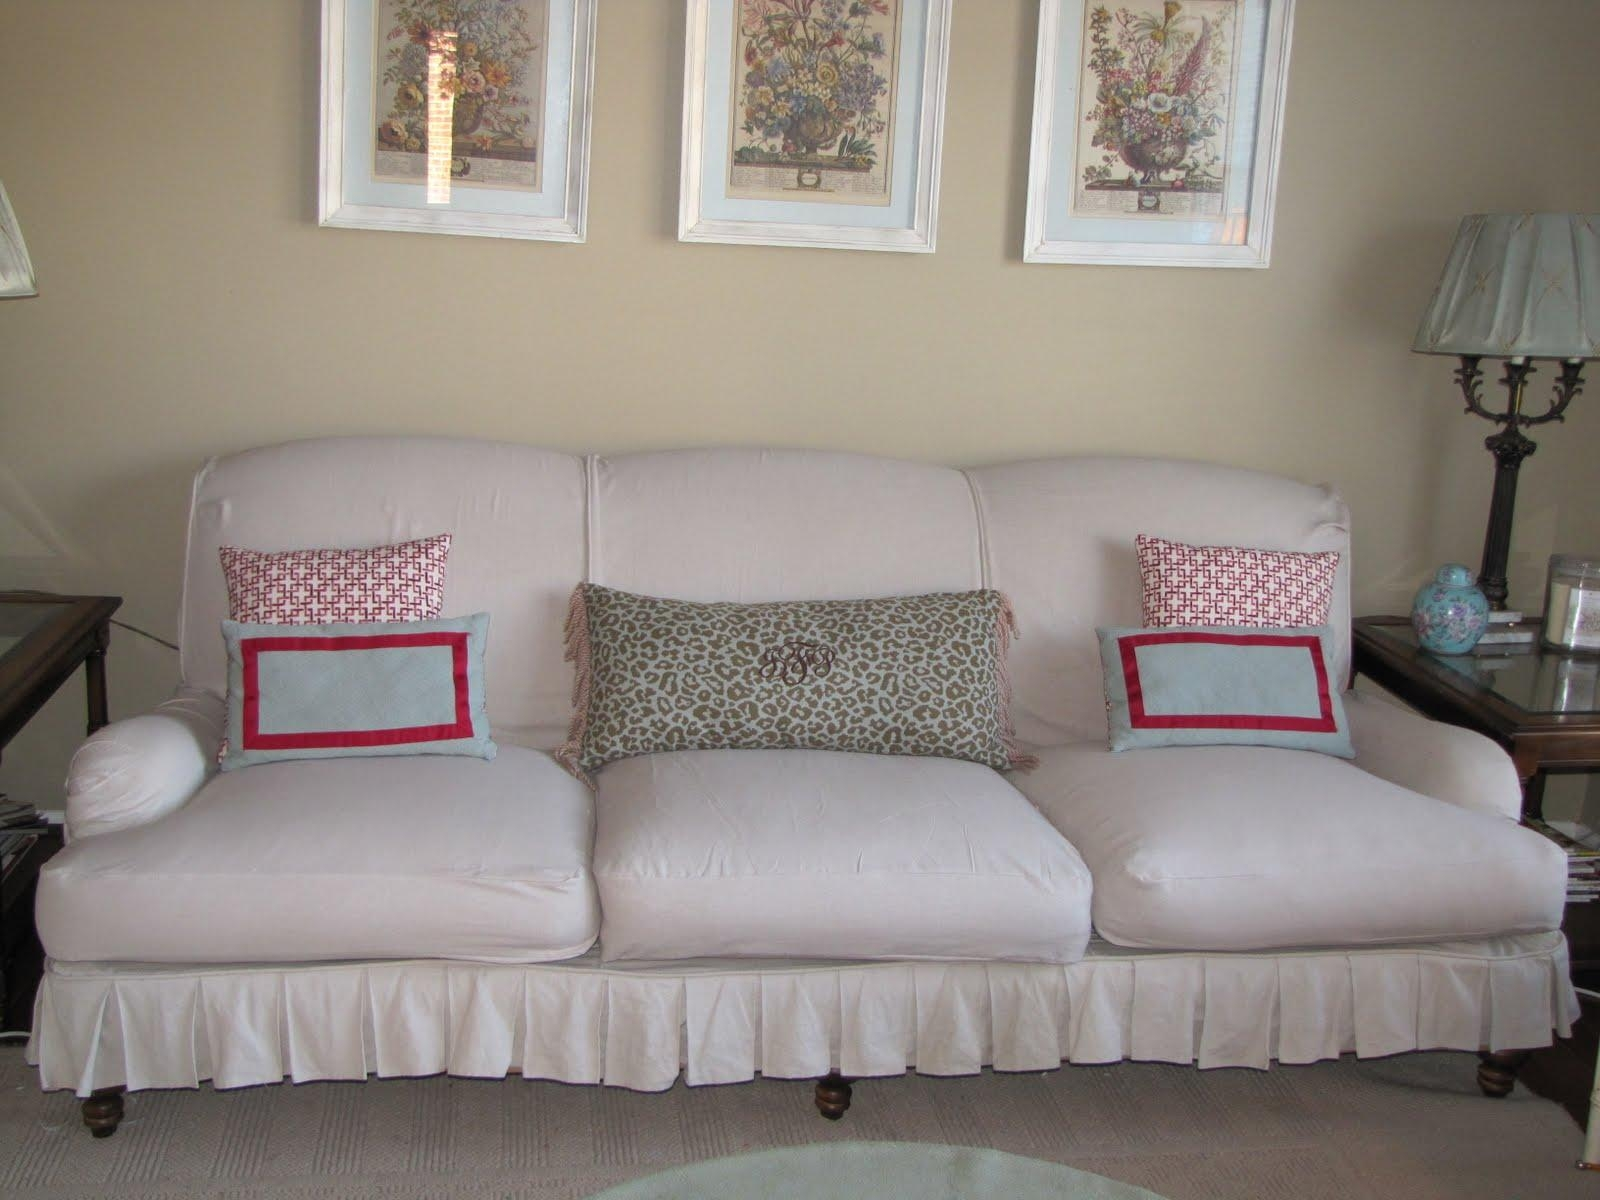 Sofas Center : Shabby Chic Slipcovers For Sofas Chenille Pertaining To Shabby Chic Slipcovers (View 14 of 20)